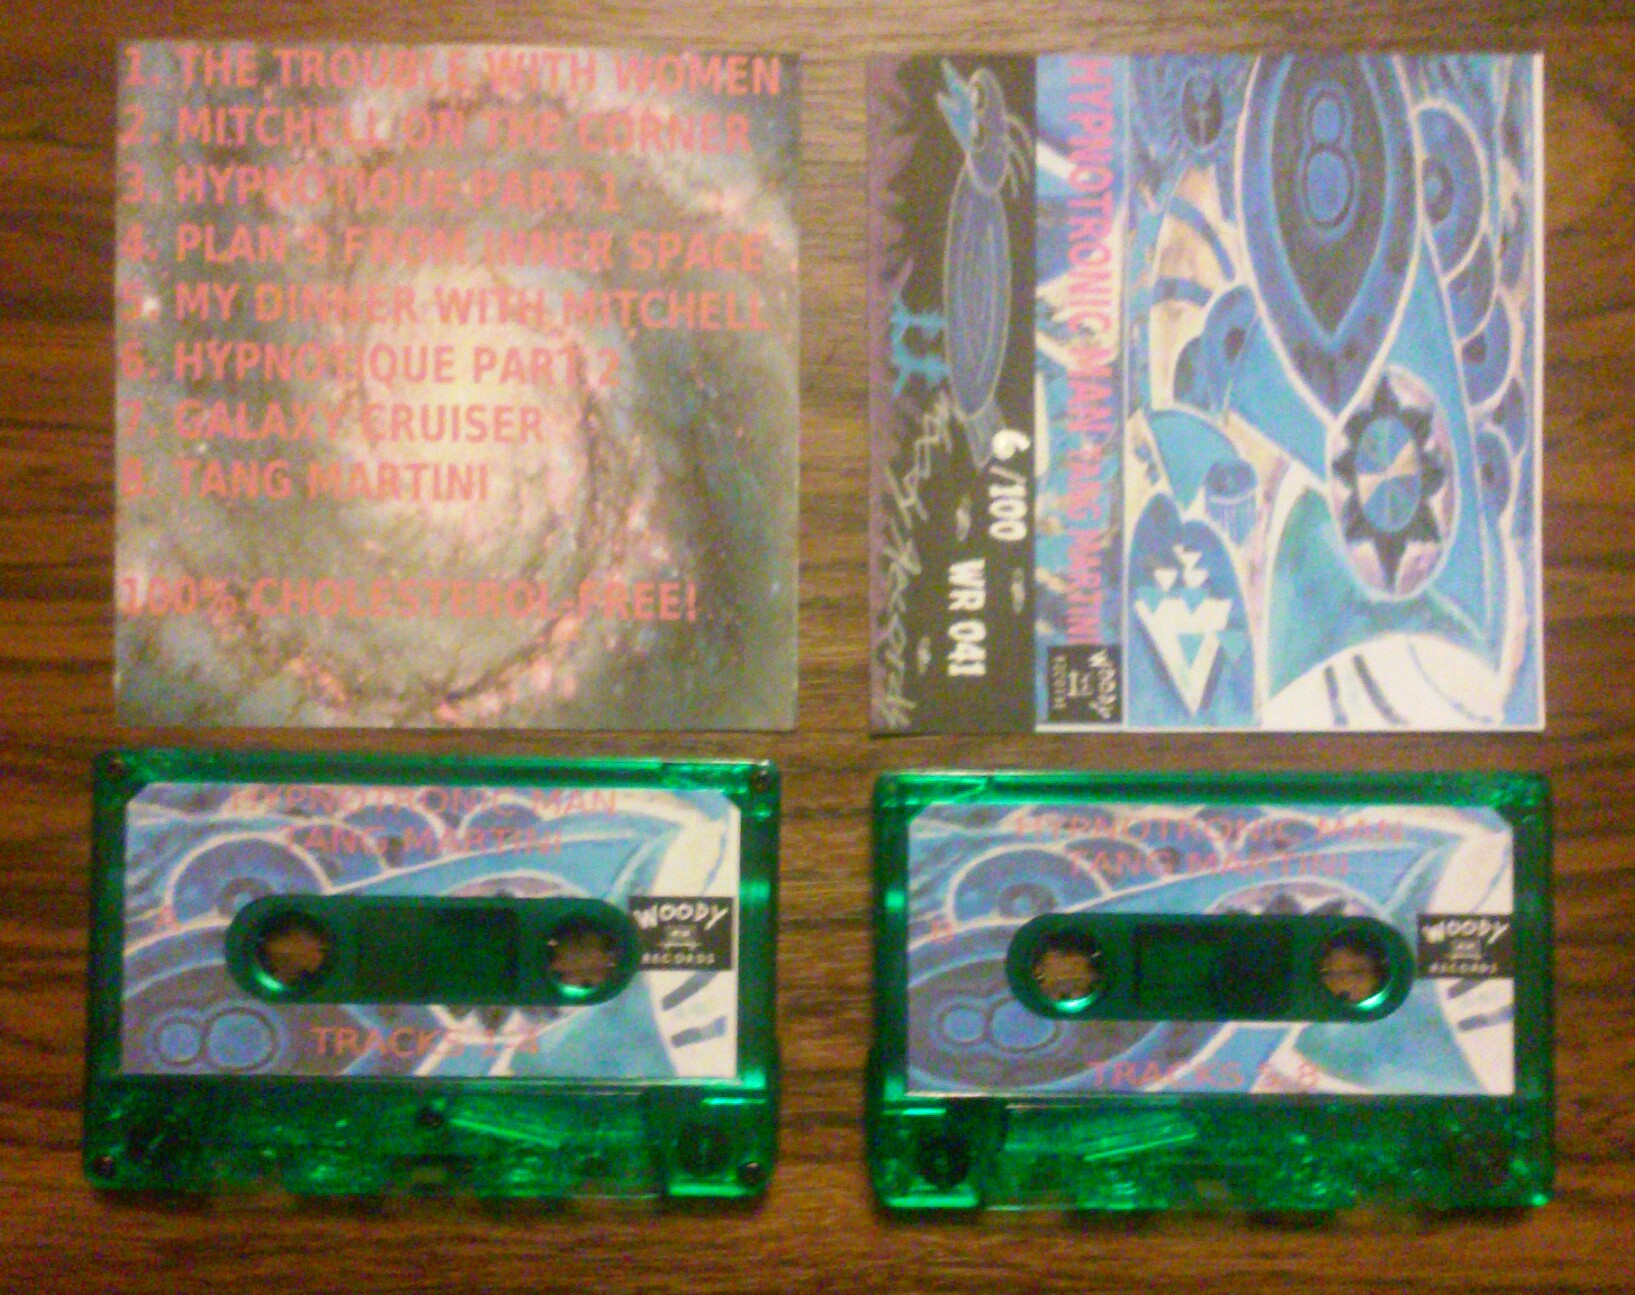 """Image of HYPNOTRONIC MAN """"Tang Martini"""" Cassette"""